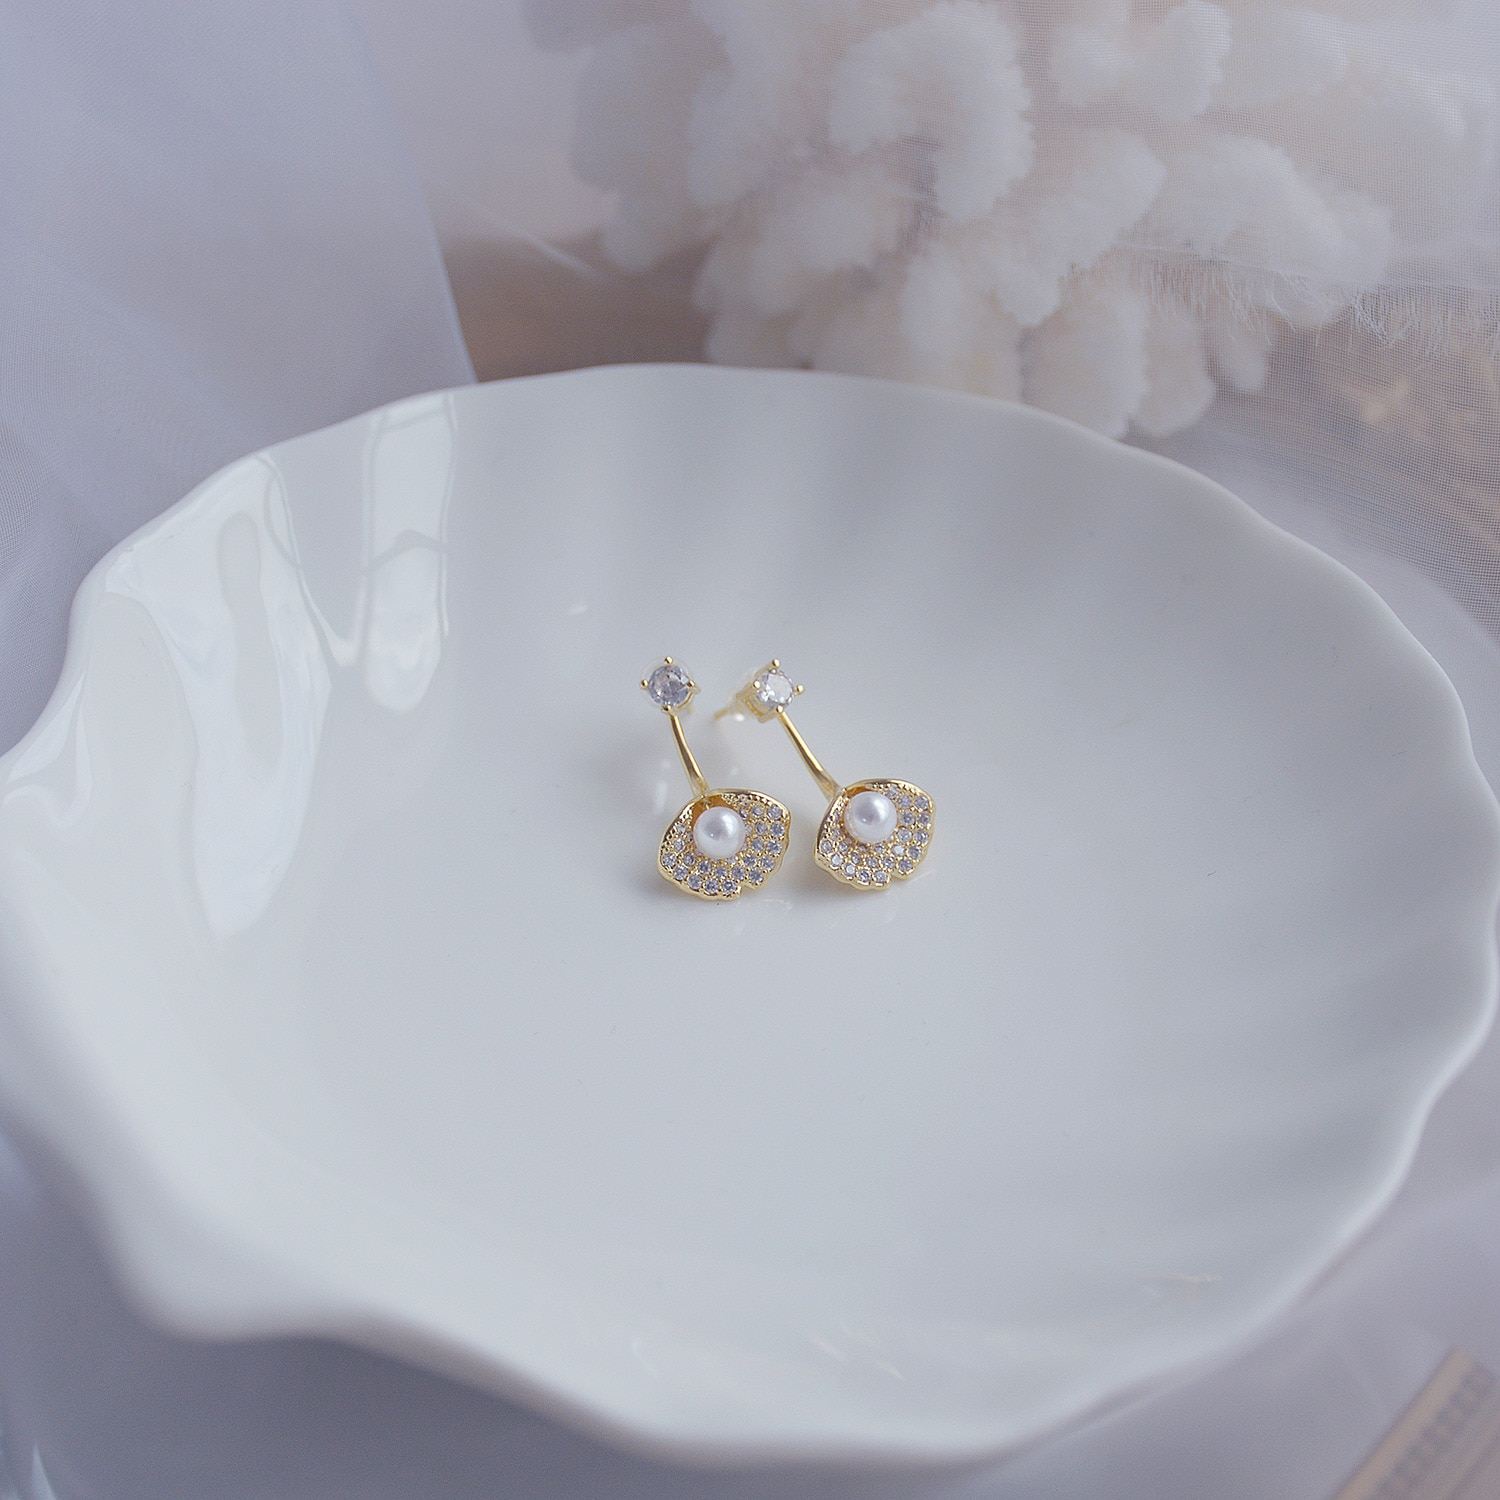 jewelry design Elegant Exquisite 14K Real Gold Pearl Ginkgo Leaf Design Stud Earrings for Women Cubic Zircon ZC Earrings  - buy with discount